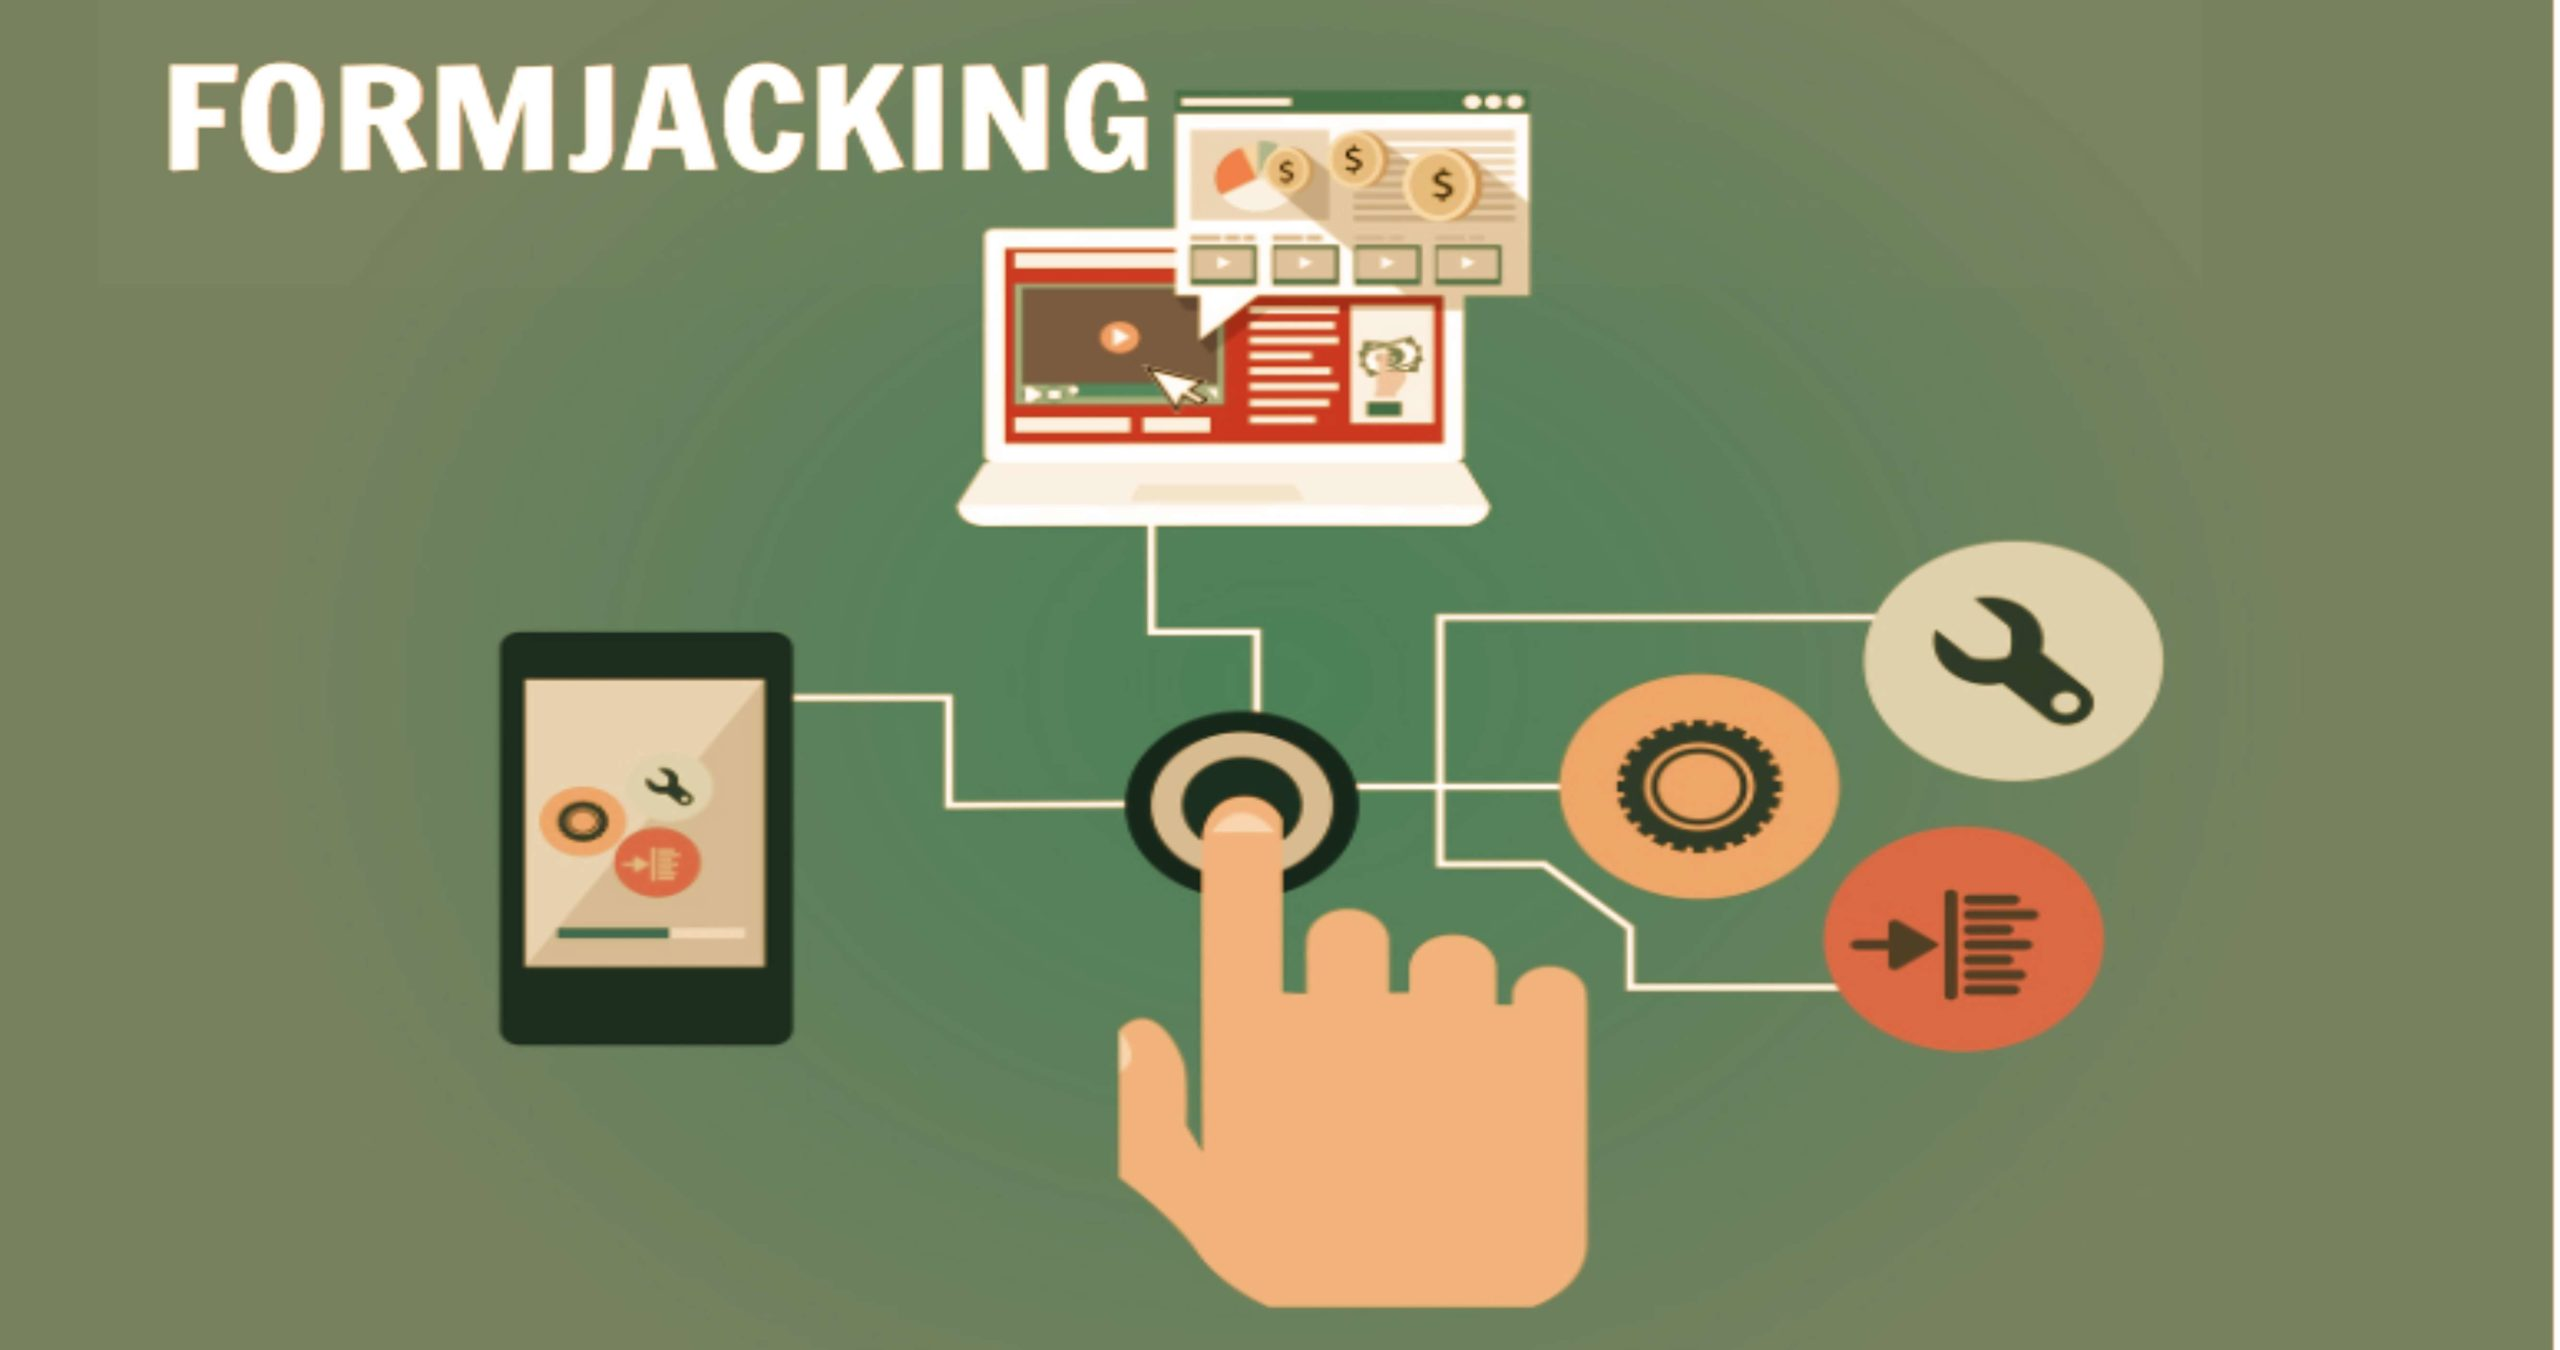 FORMJACKING: A NEW THREAT TO THE SECURITY OF YOUR ONLINE STORE